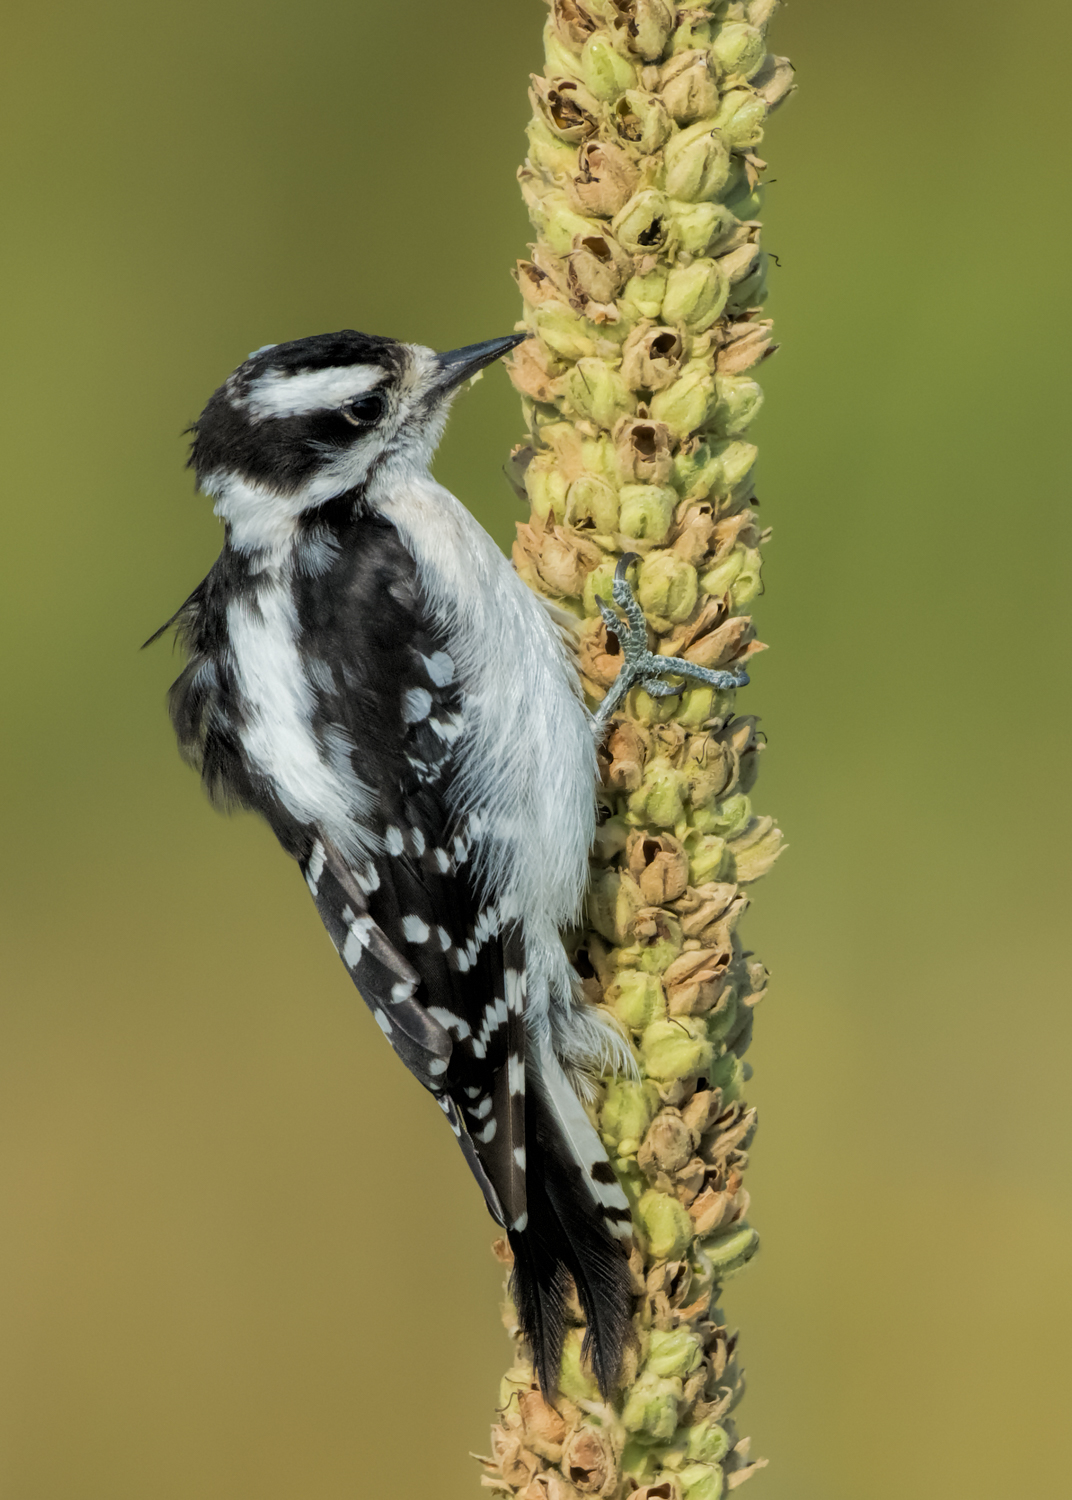 Downy Woodpecker, El Paso County (CO), August 2015